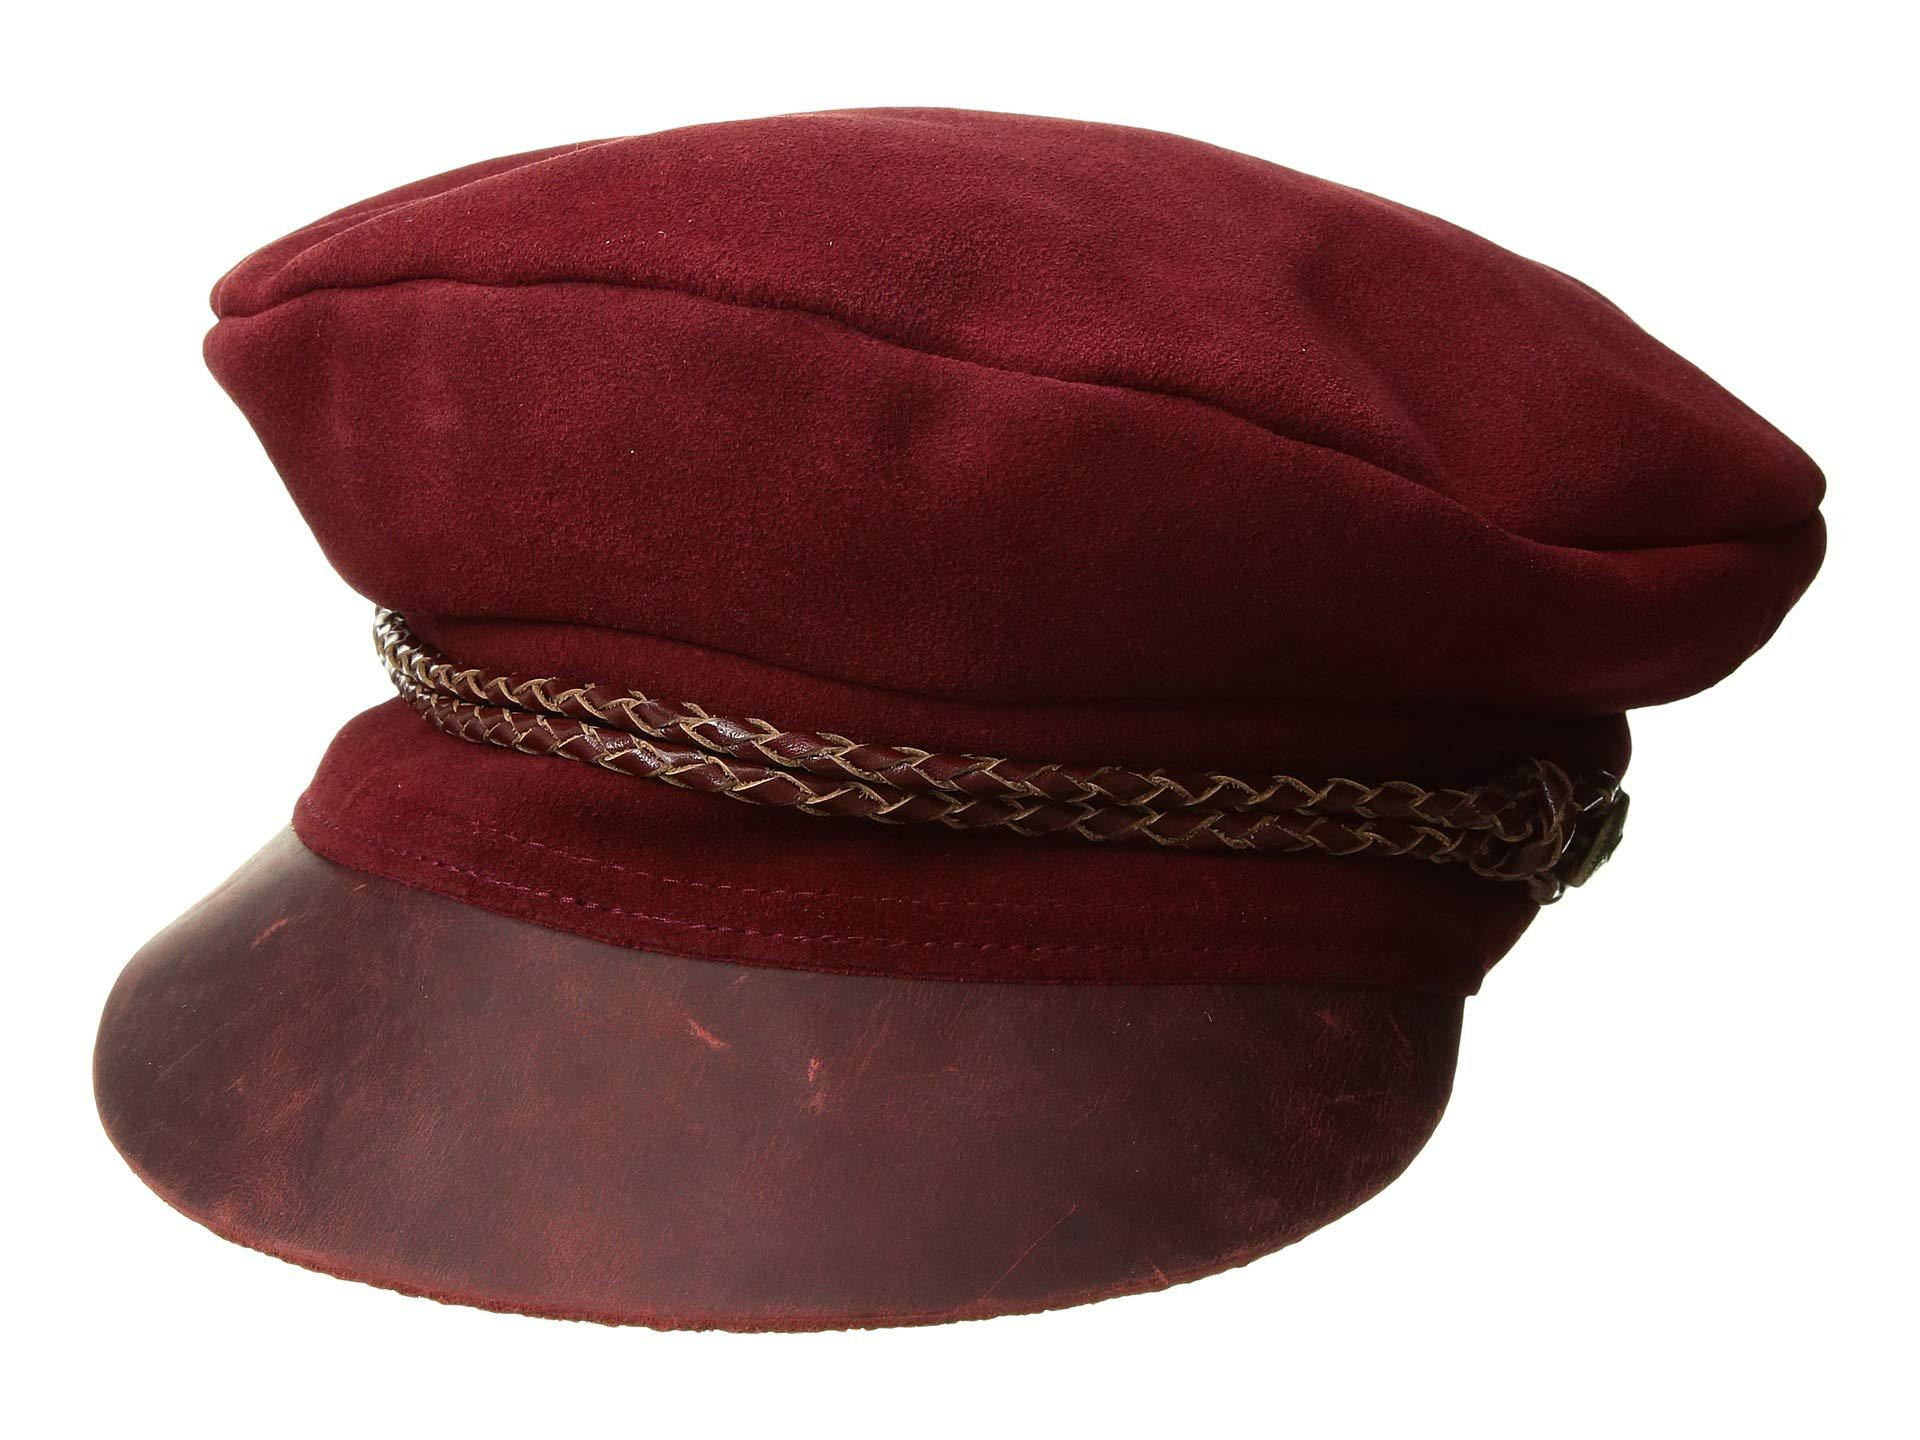 Lyst - Brixton Kayla Cap (brown brown) Traditional Hats in Red b842c73ff94d